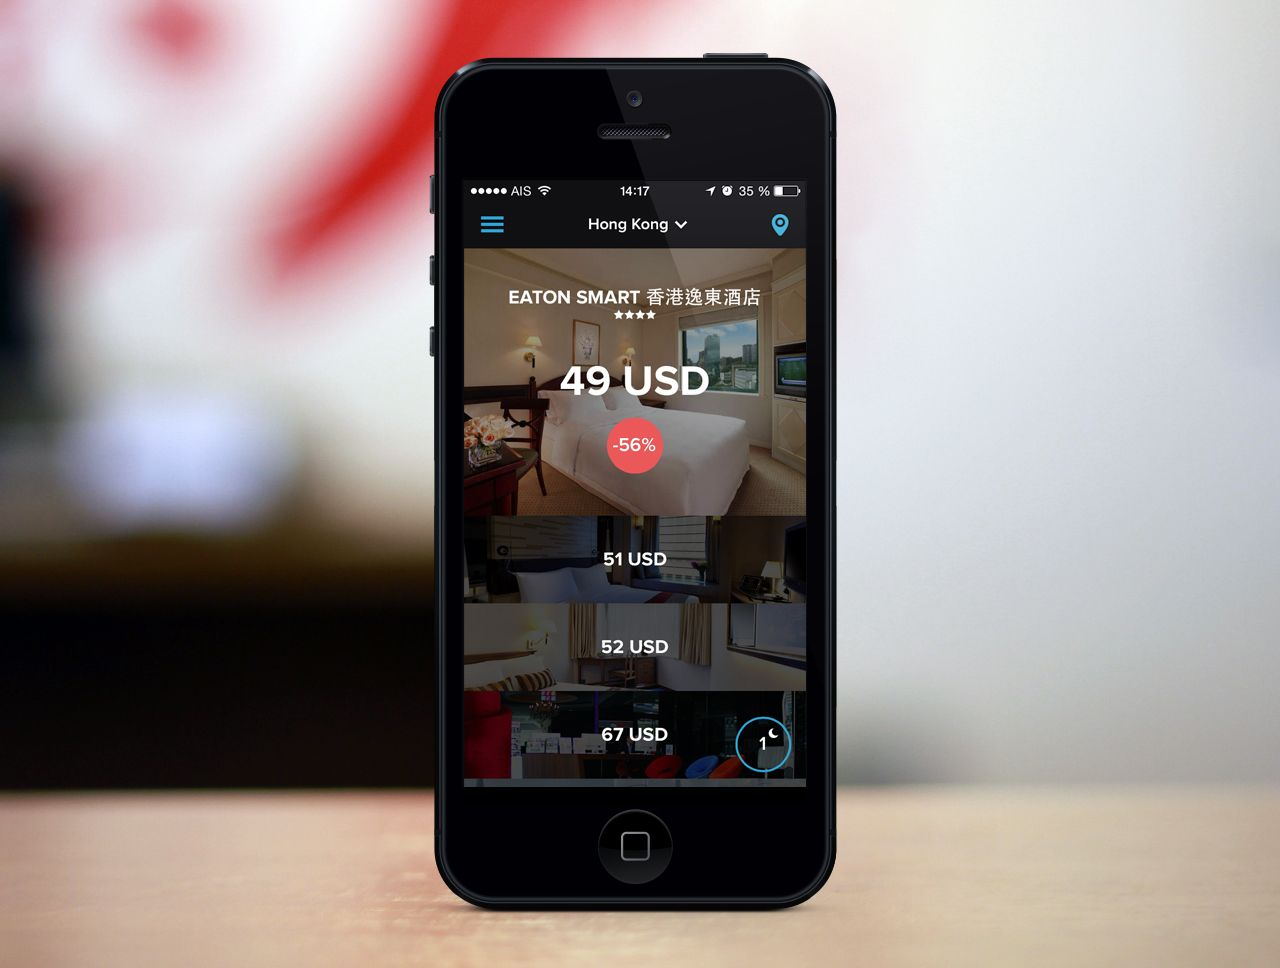 HotelQuickly adds an extra 24 hours to last-minute hotel booking app